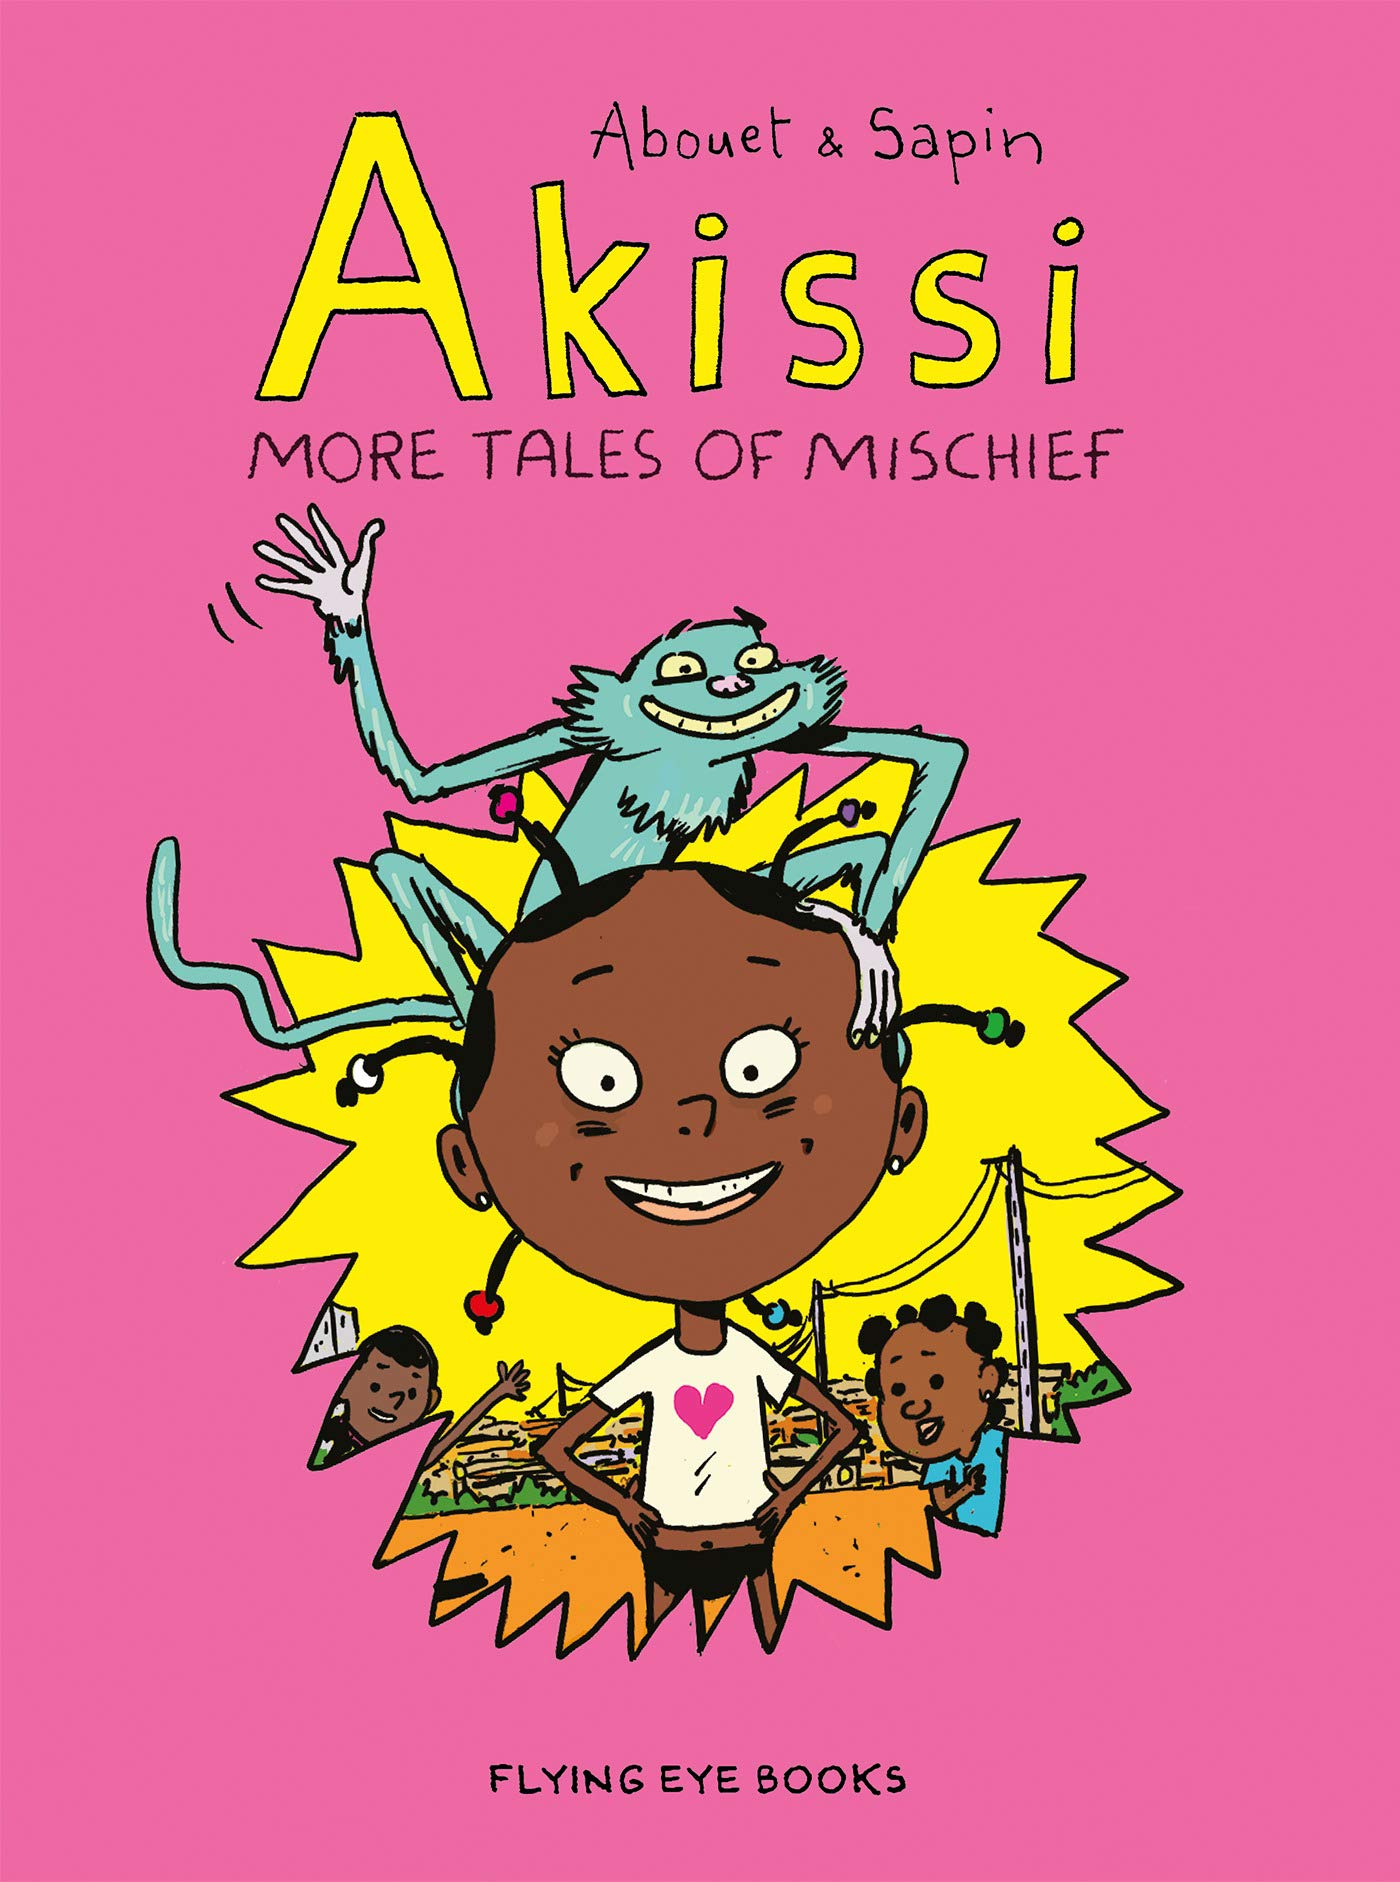 Akissi: Tales of Mischief for international day of the girl child